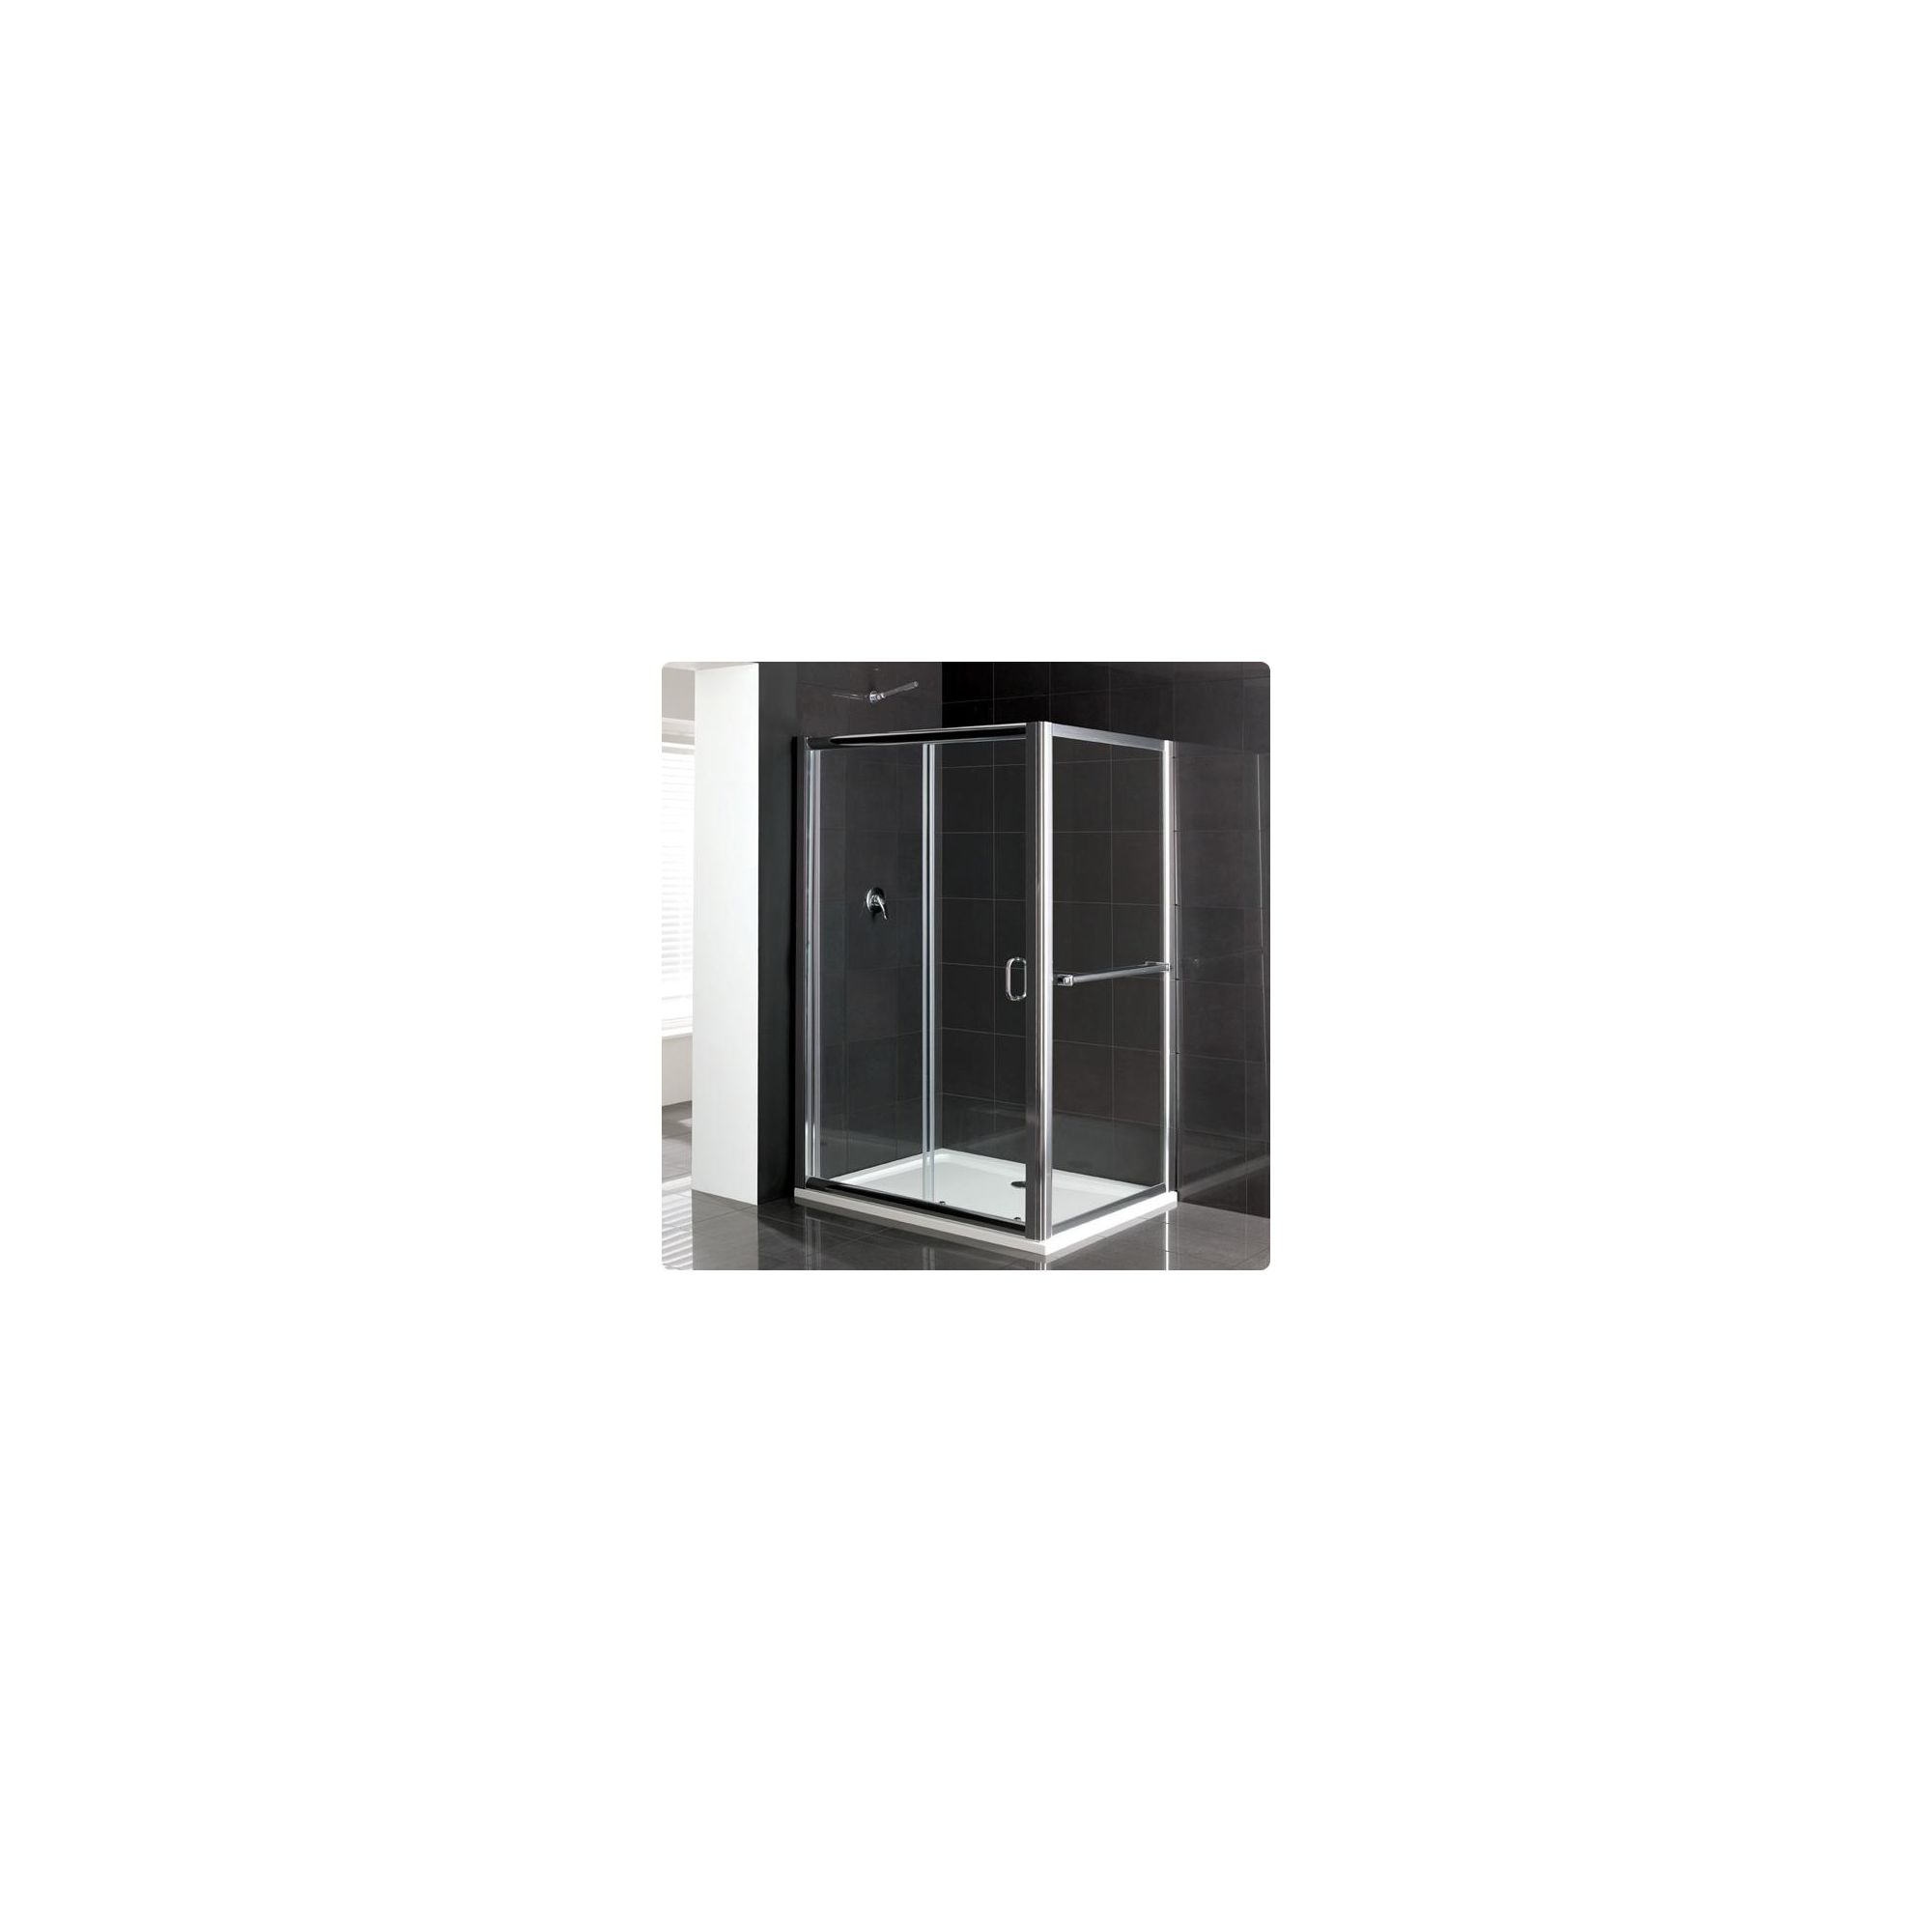 Duchy Elite Silver Sliding Door Shower Enclosure, 1400mm x 700mm, Standard Tray, 6mm Glass at Tesco Direct